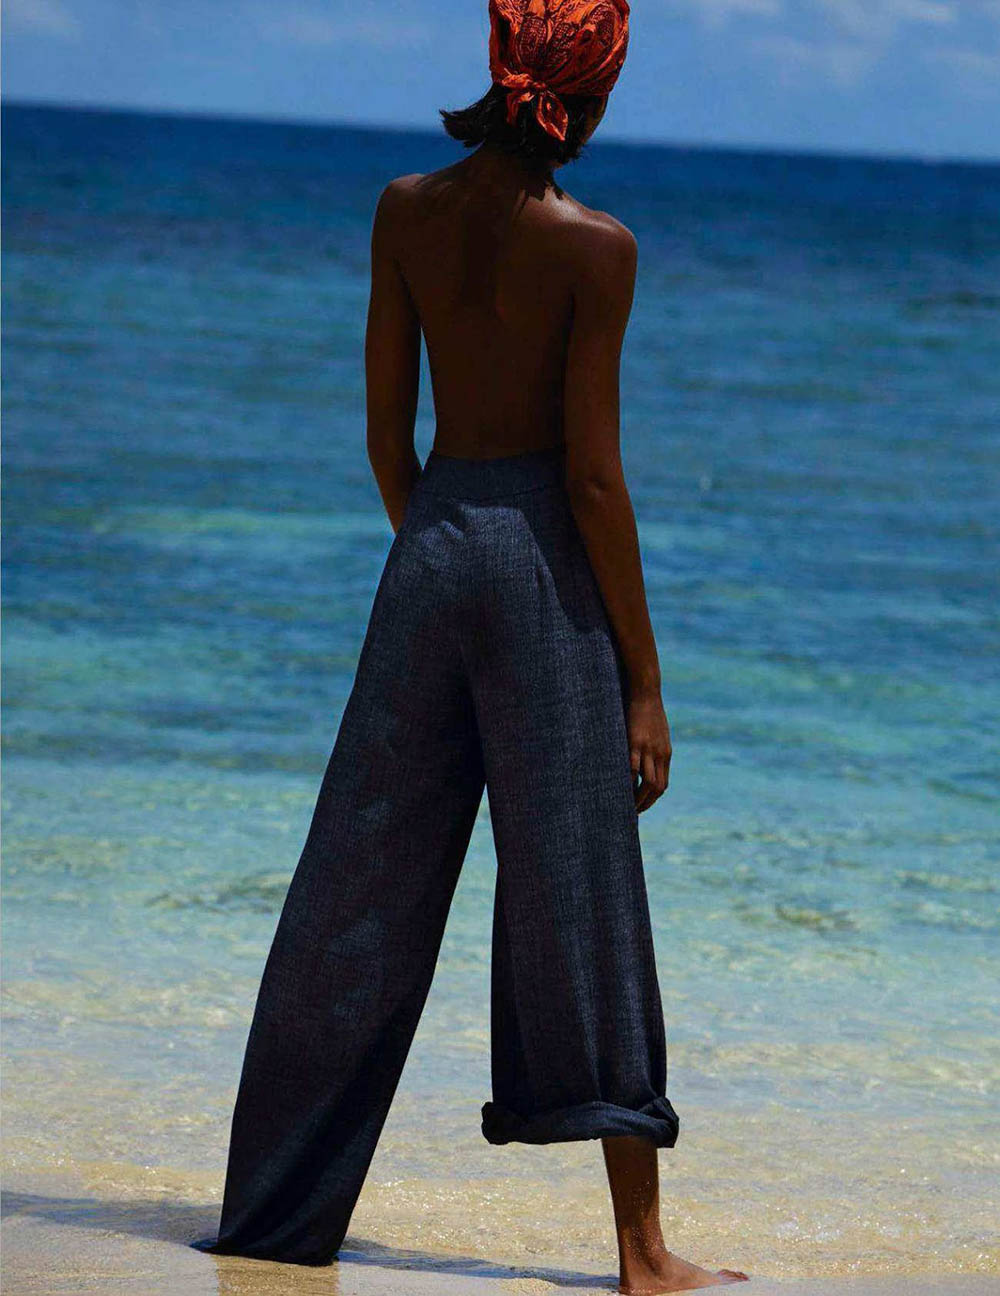 Naomi Chin Wing by Txema Yeste for Vogue Spain August 2018